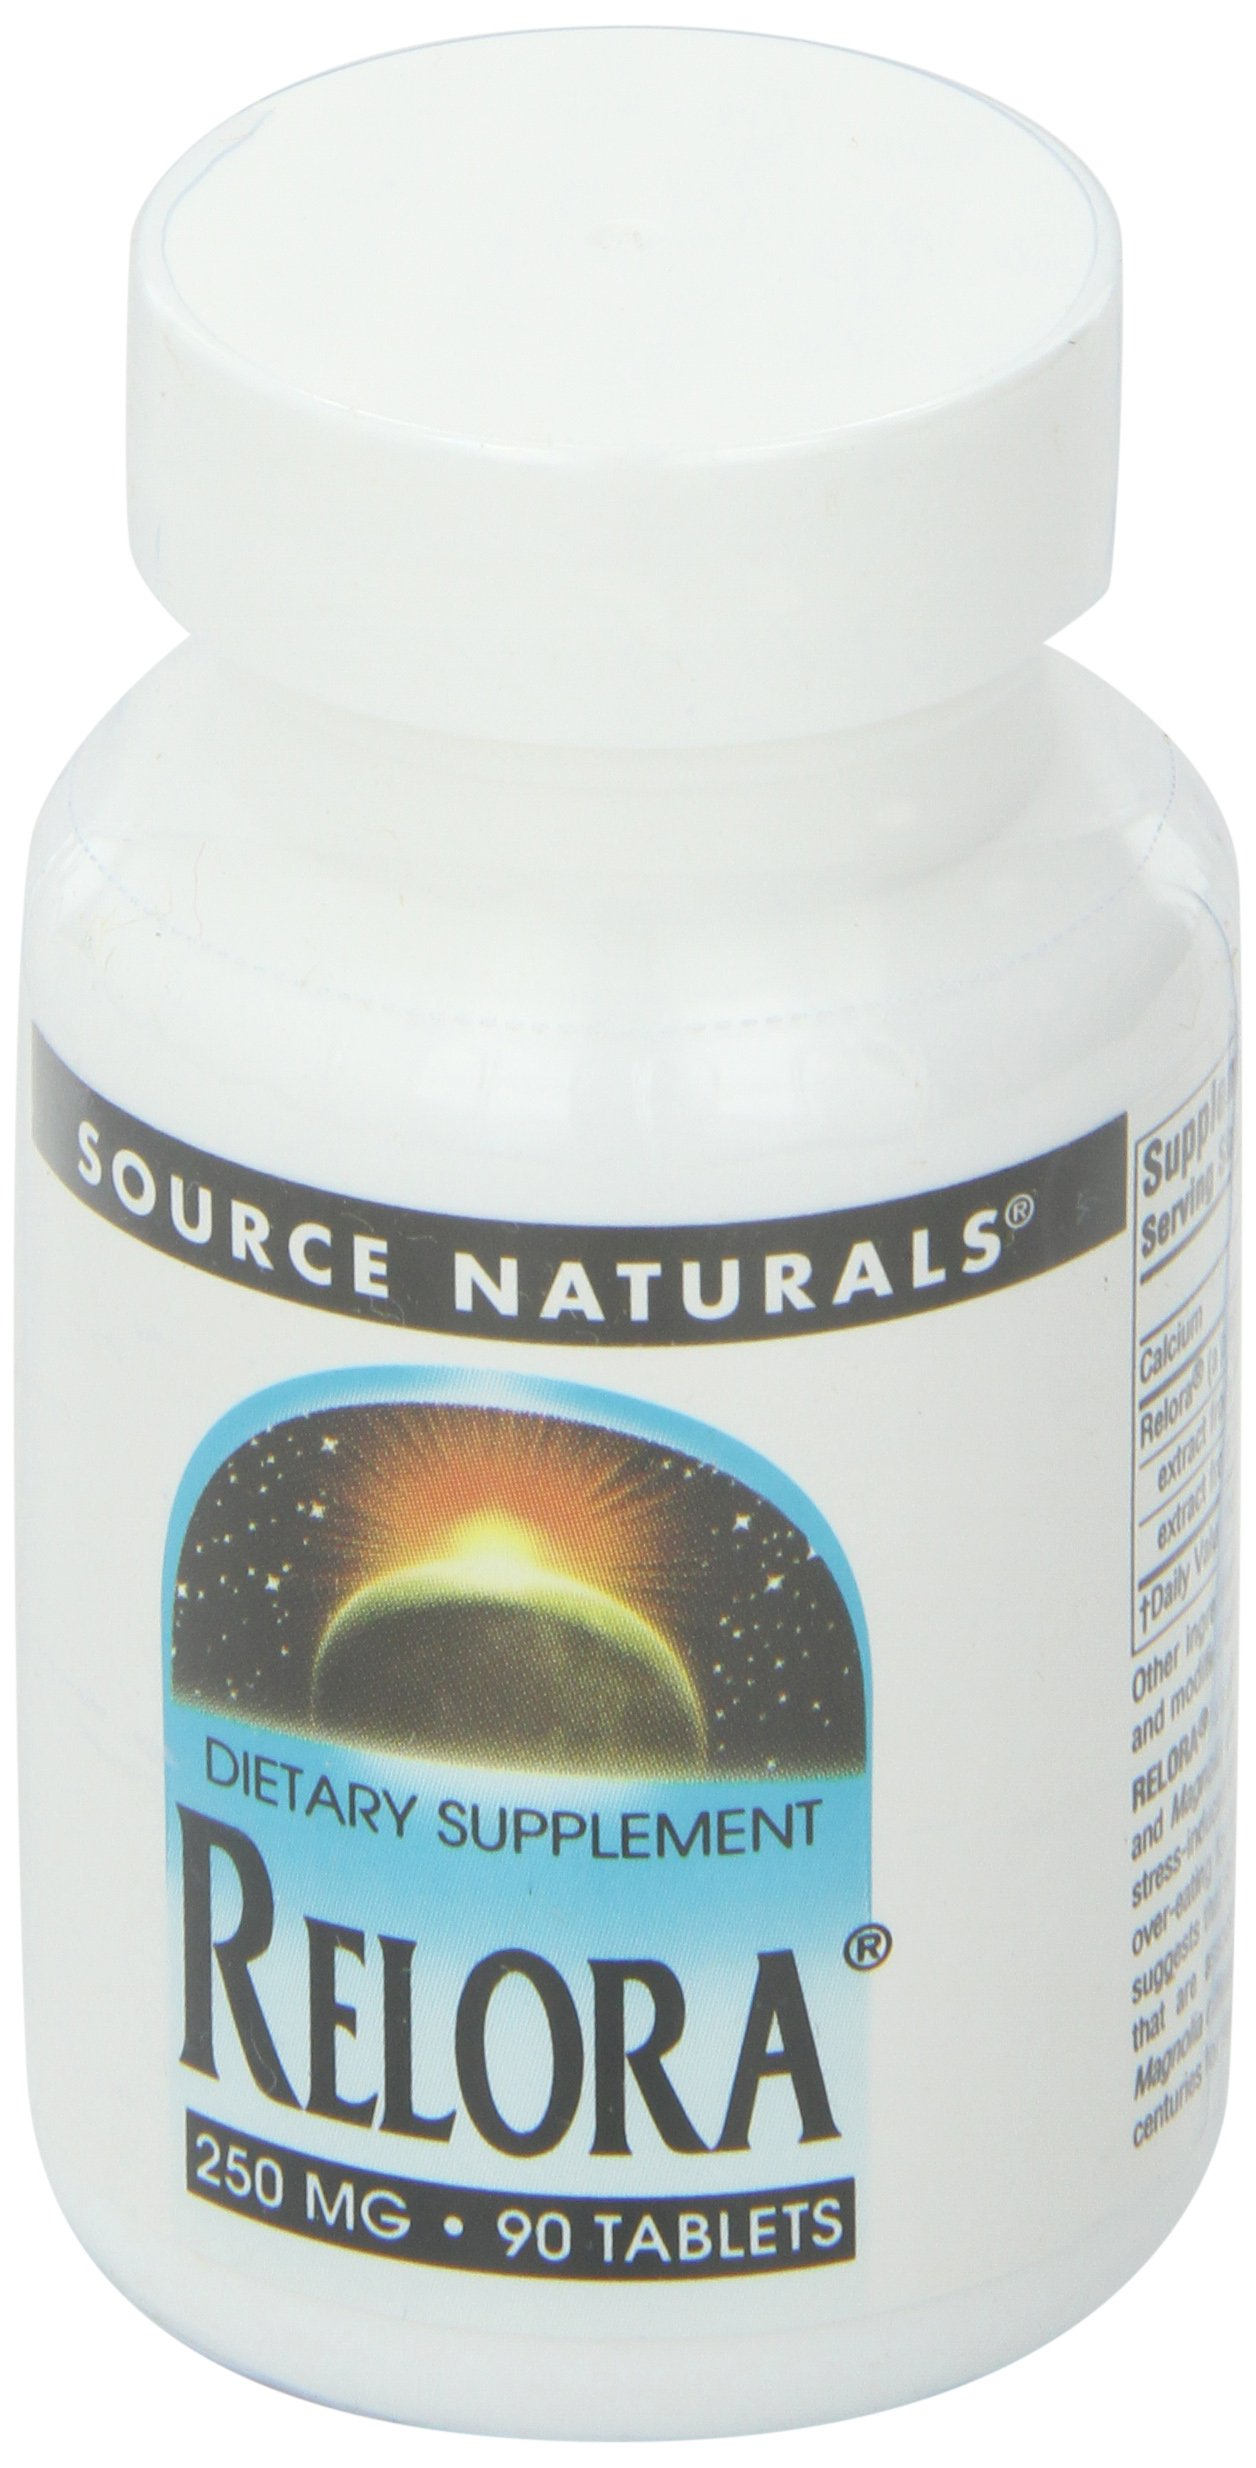 Source Naturals Relora, 250mg, 90 Tablets (Pack of 2) by Source Naturals